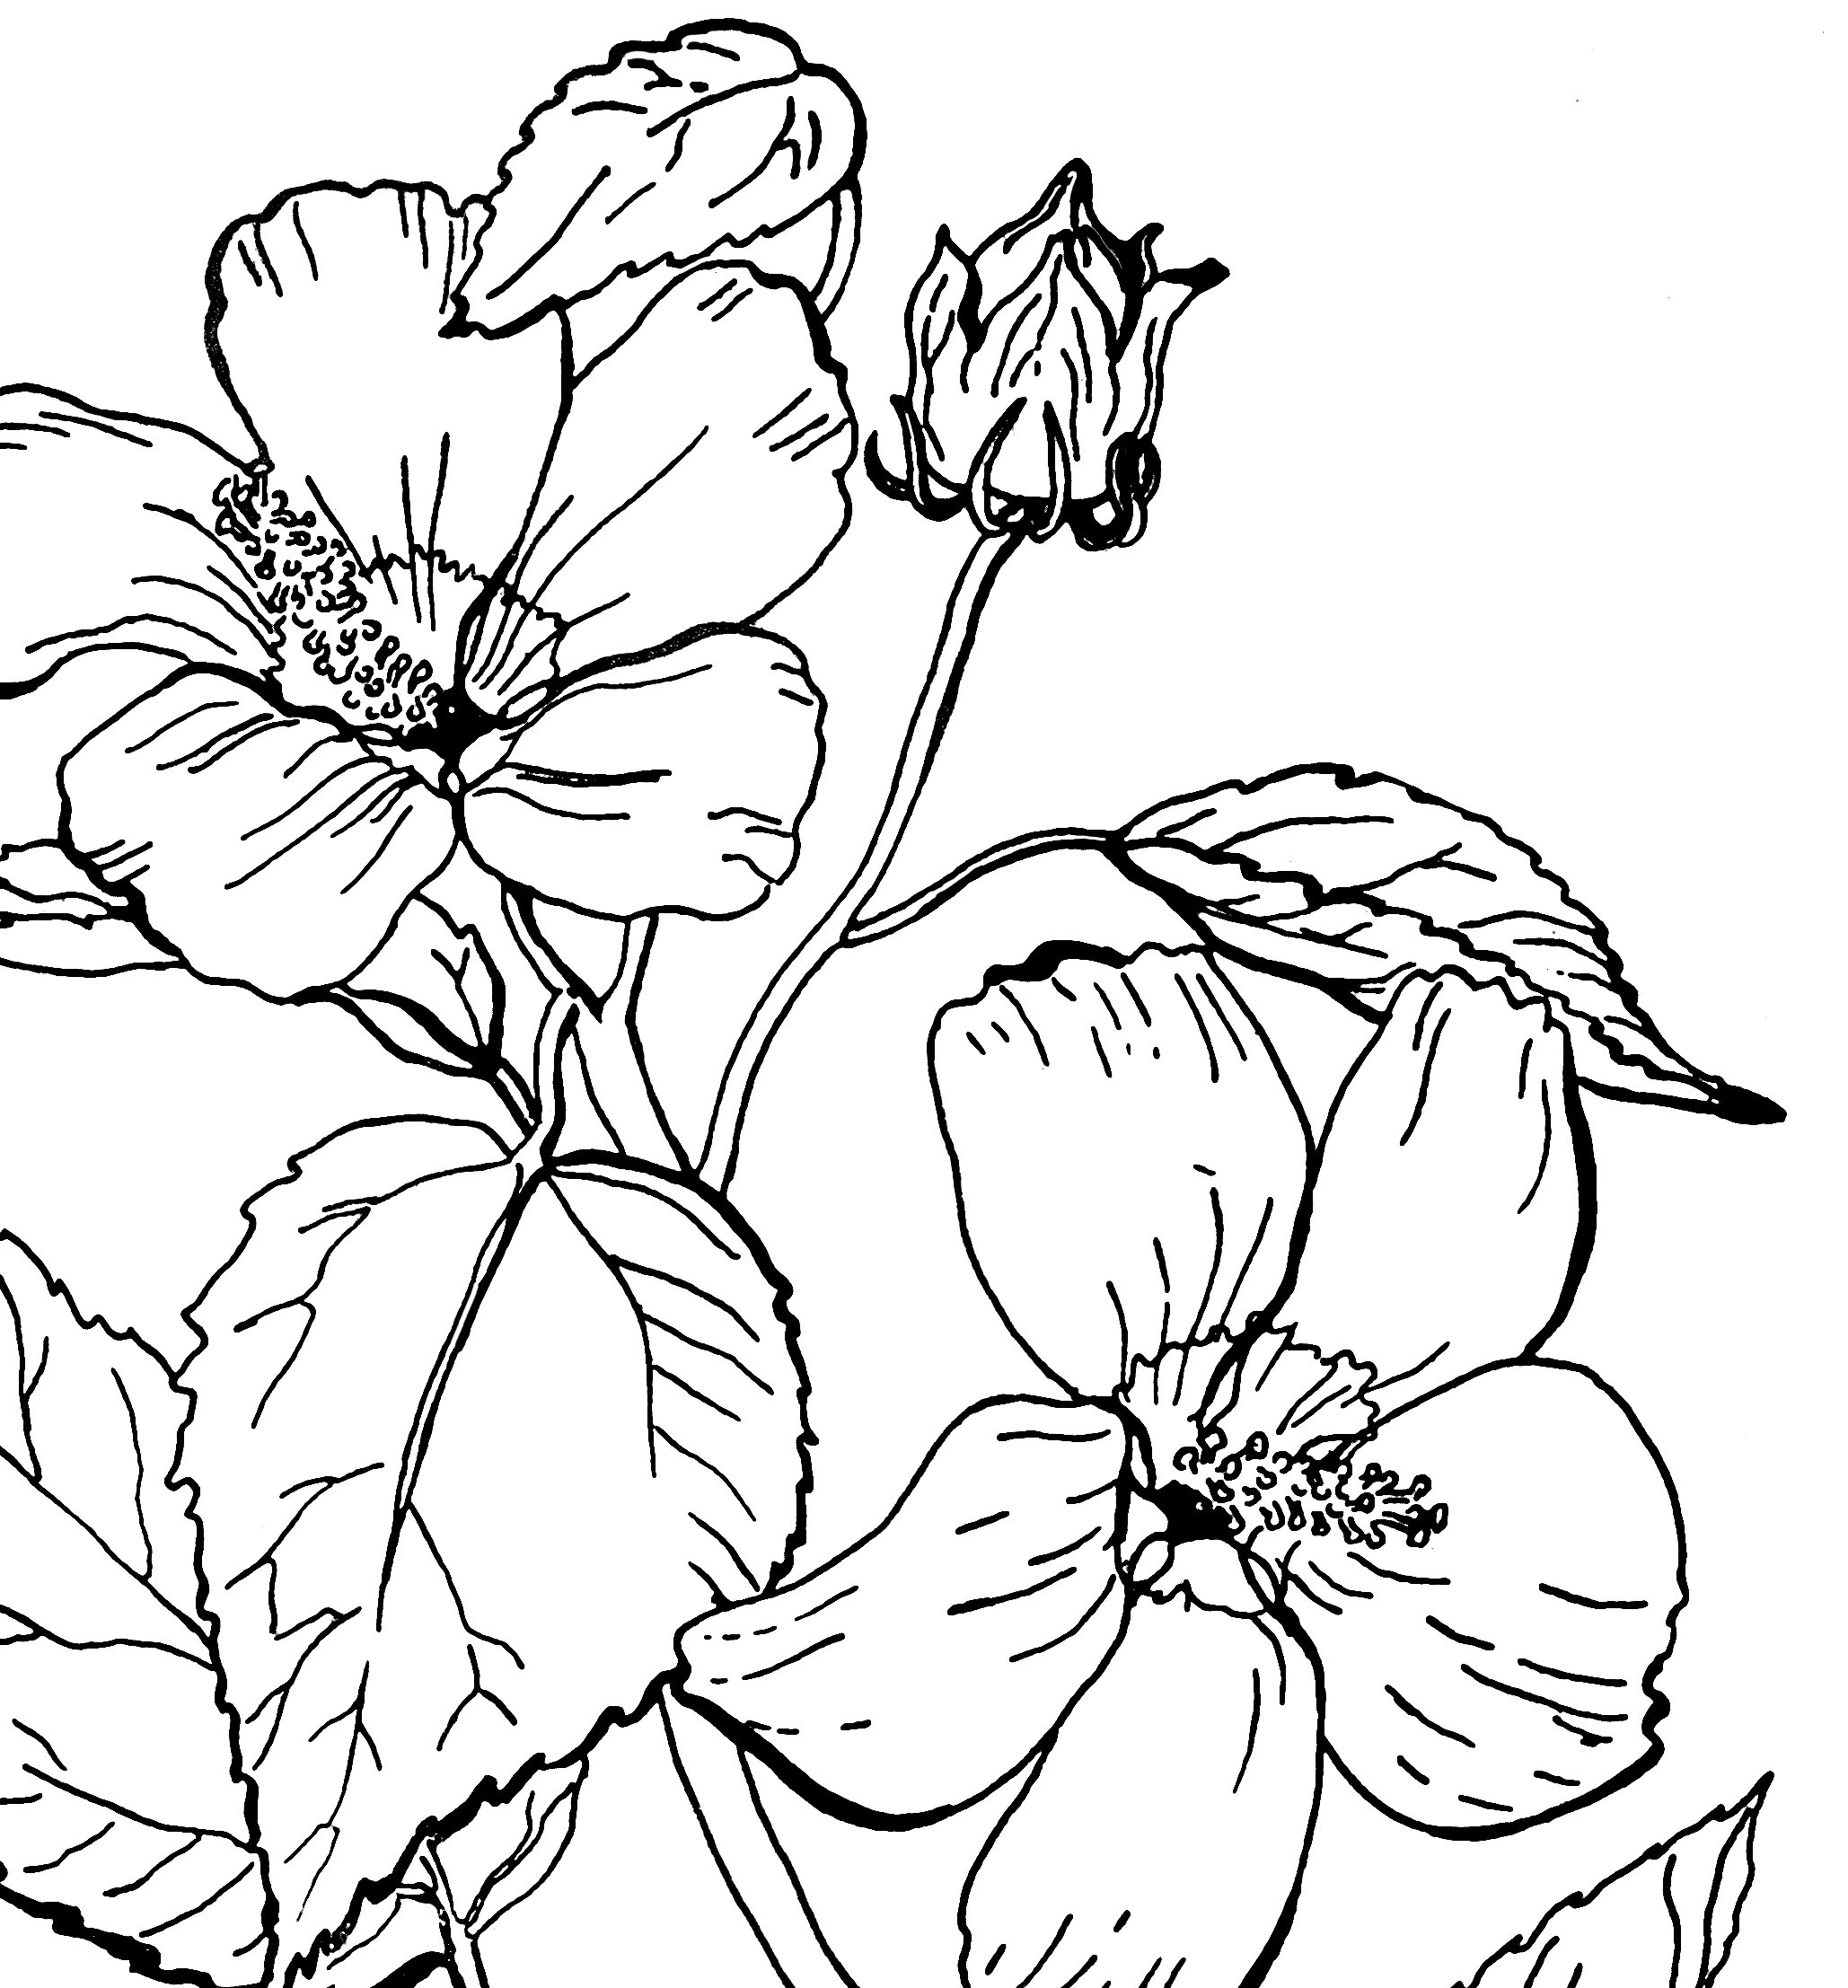 coloring page rose rose coloring page free printable coloring pages rose coloring page